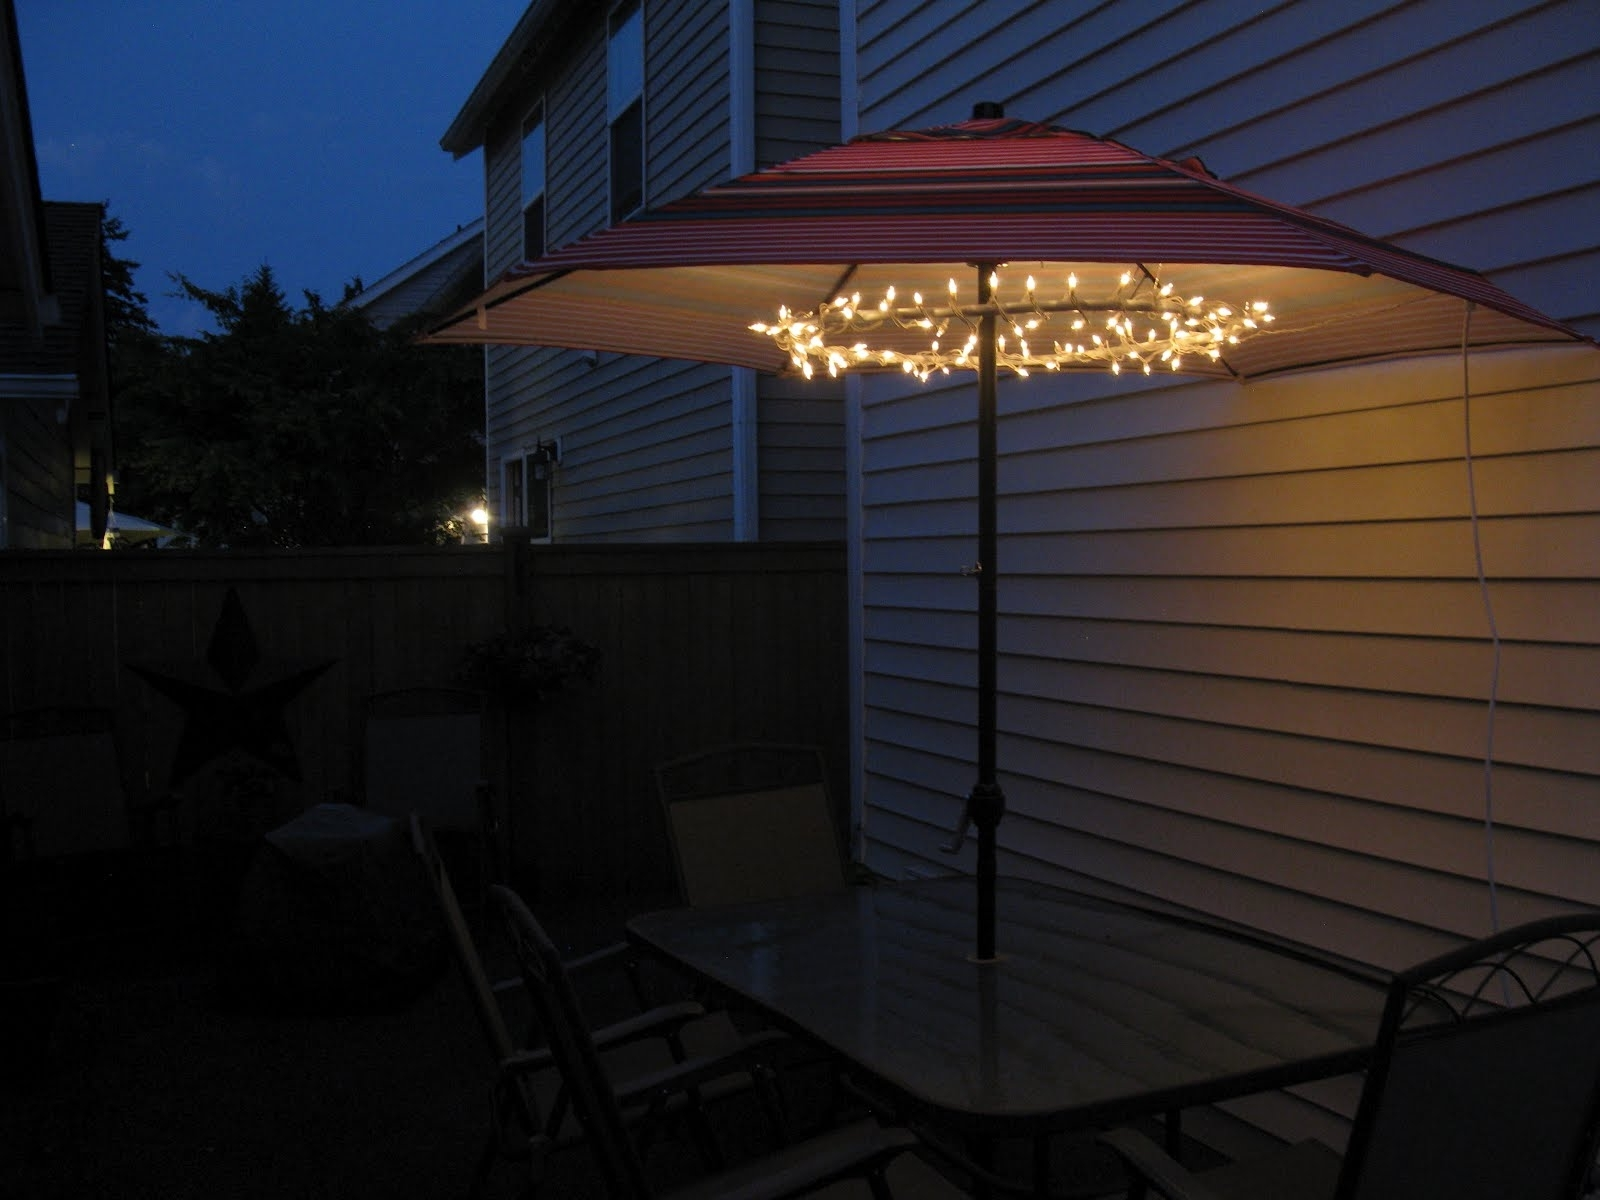 Favorite Great Patio Umbrellas With Lights Patio Umbrella Lights For The With Patio Umbrellas With Lights (View 8 of 20)